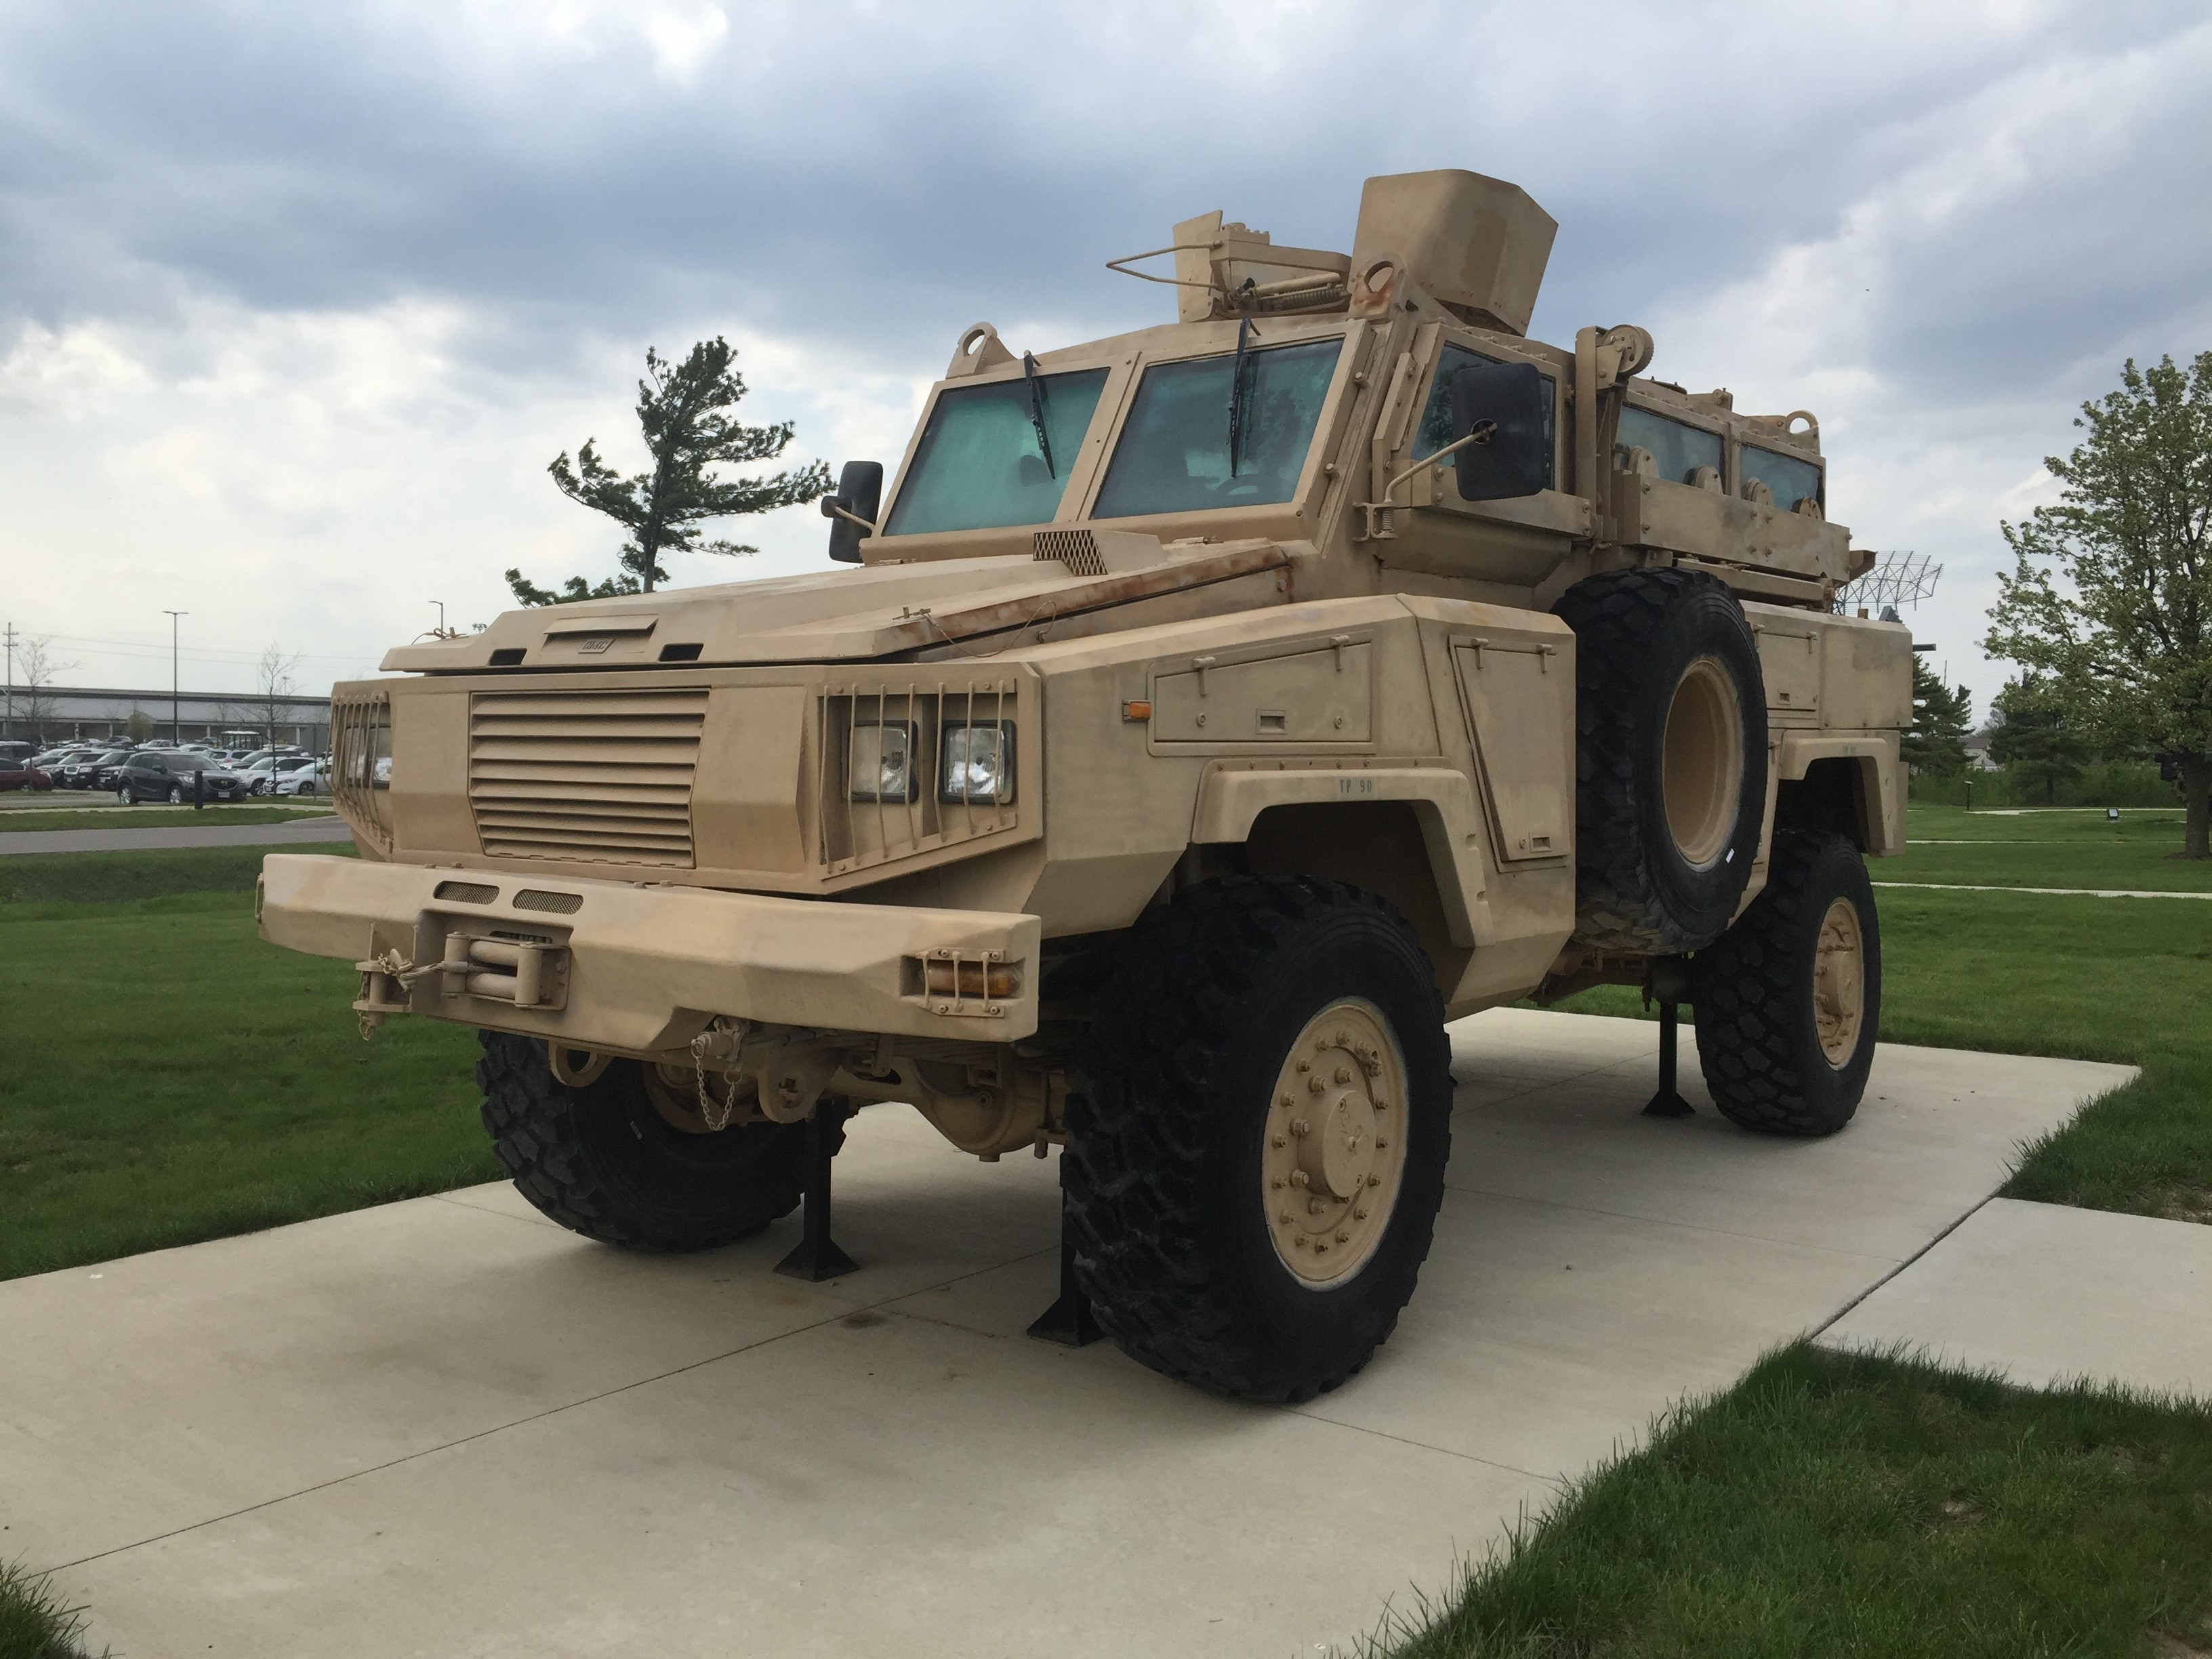 Mine Resistant Ambush Protected (MRAP) All-Terrain Vehicle (M-ATV)